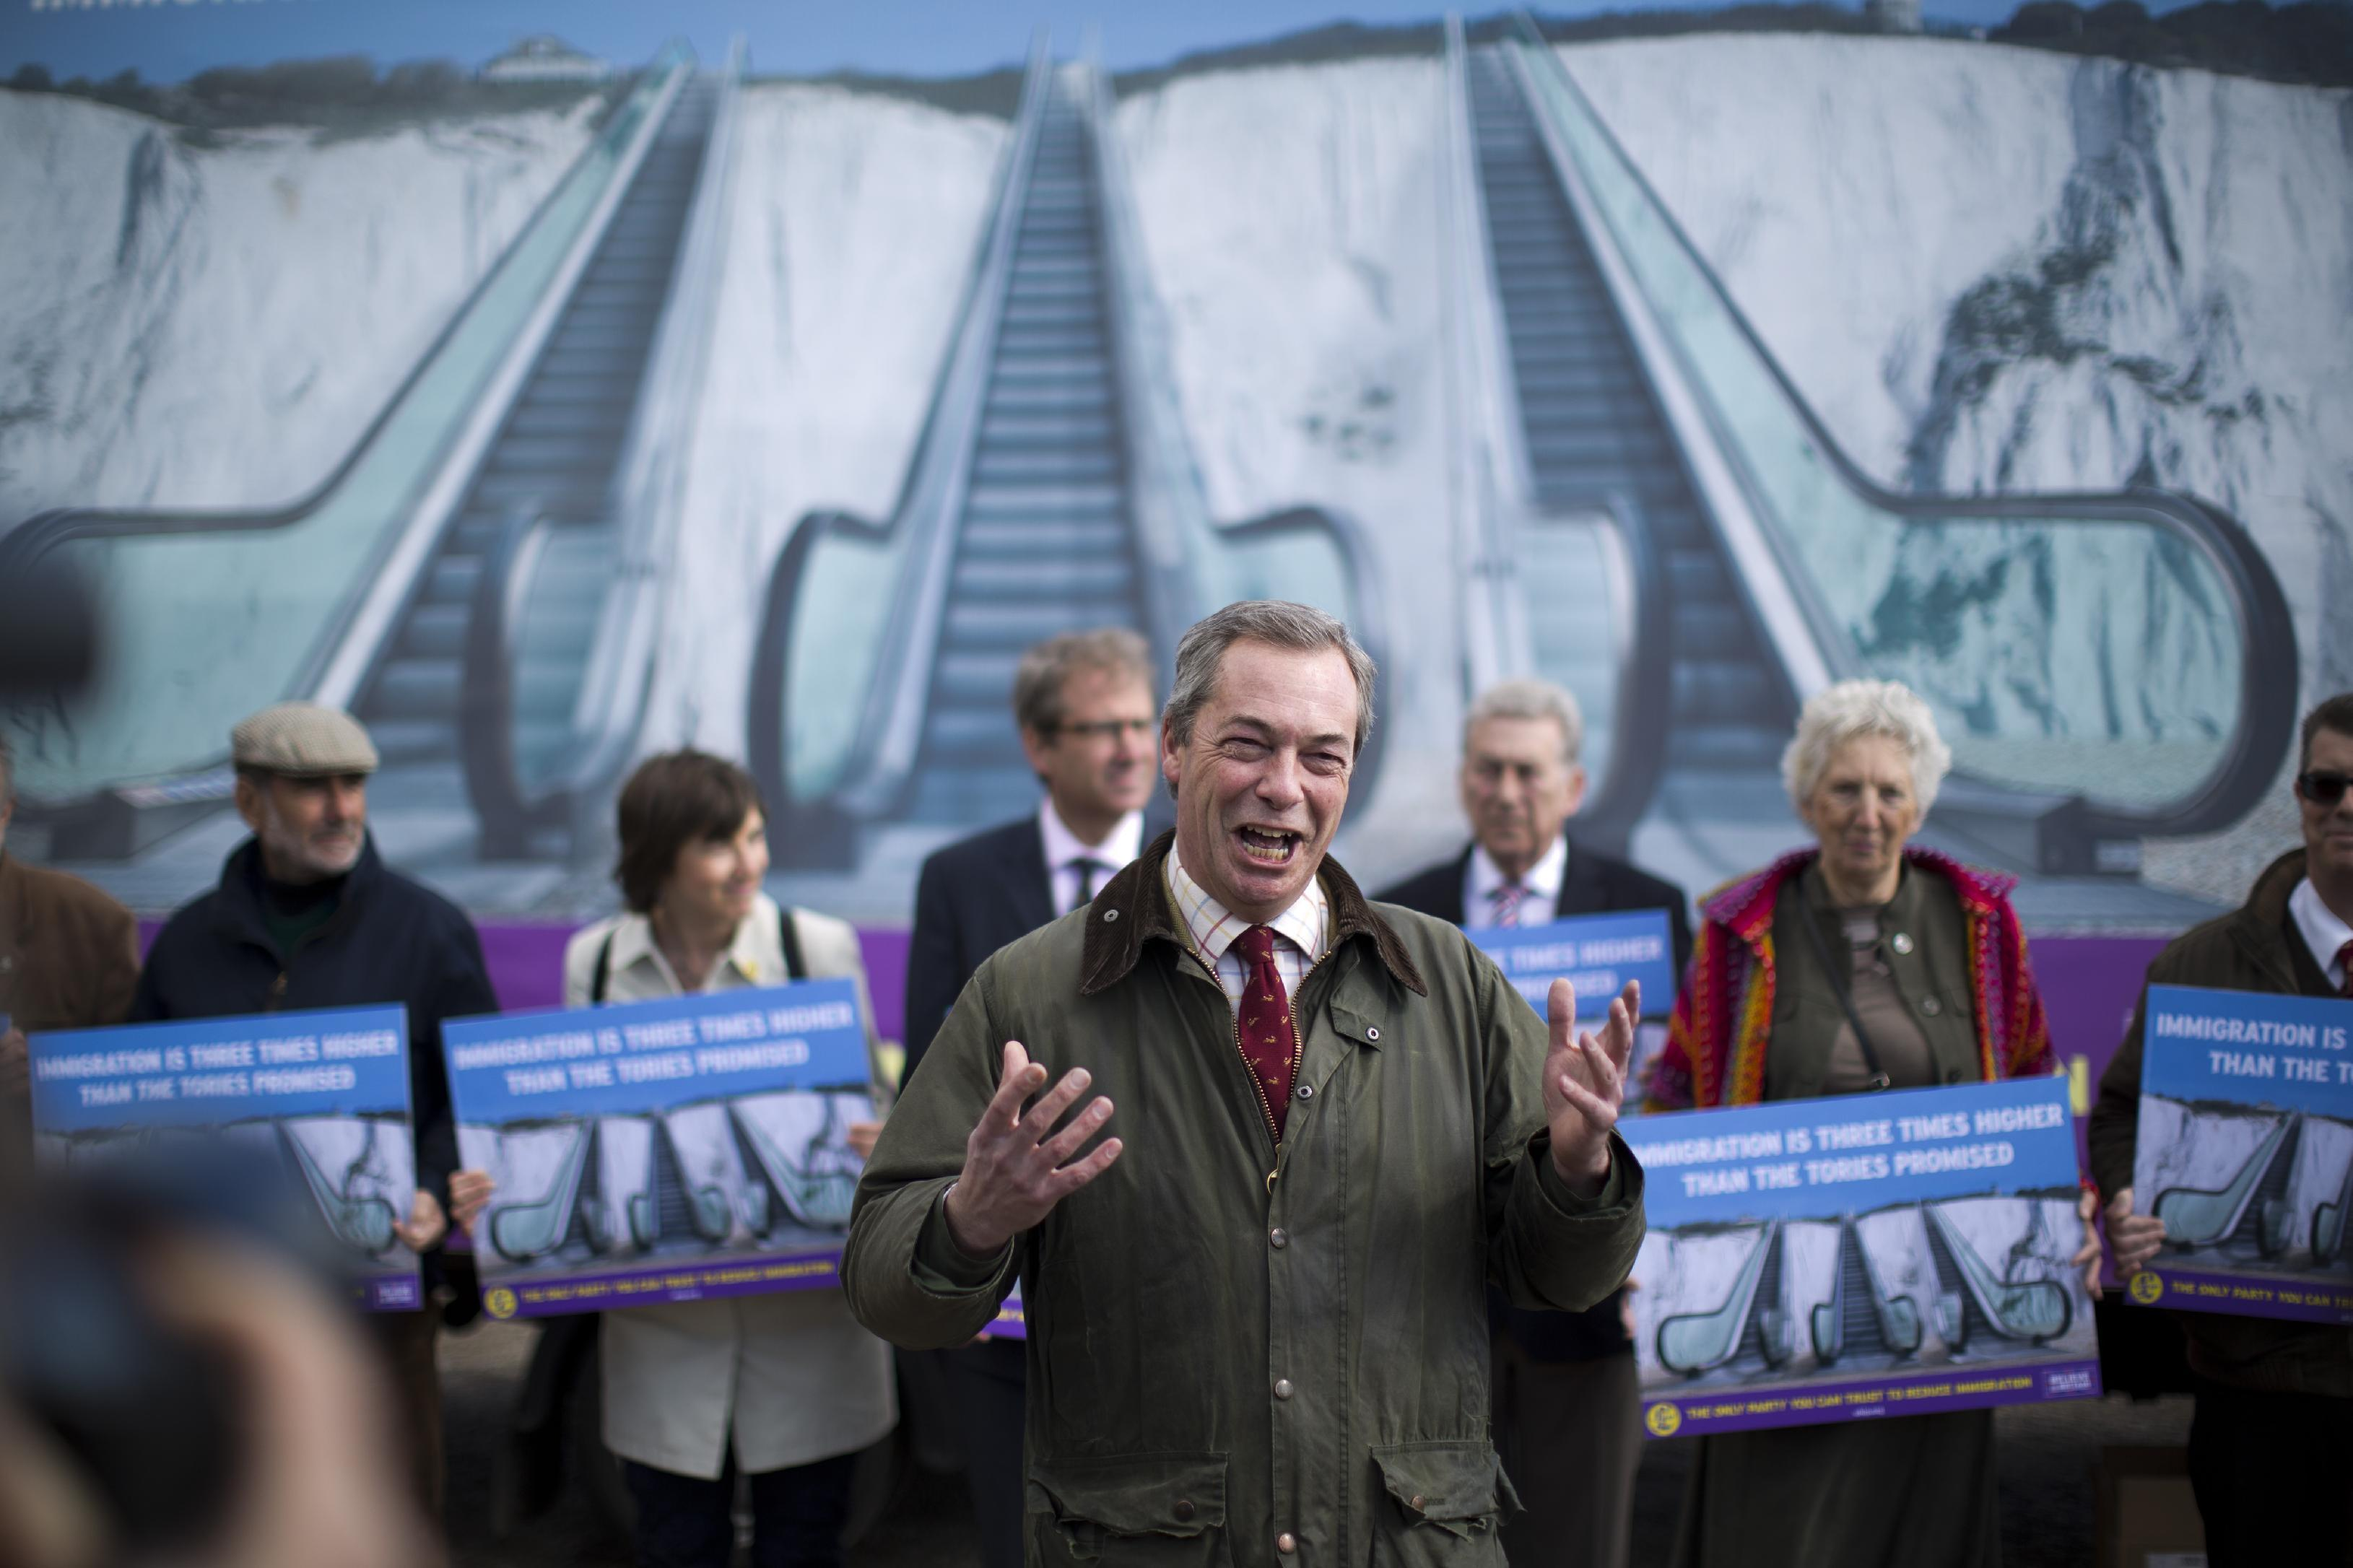 Unease about immigration at core of UK election campaign